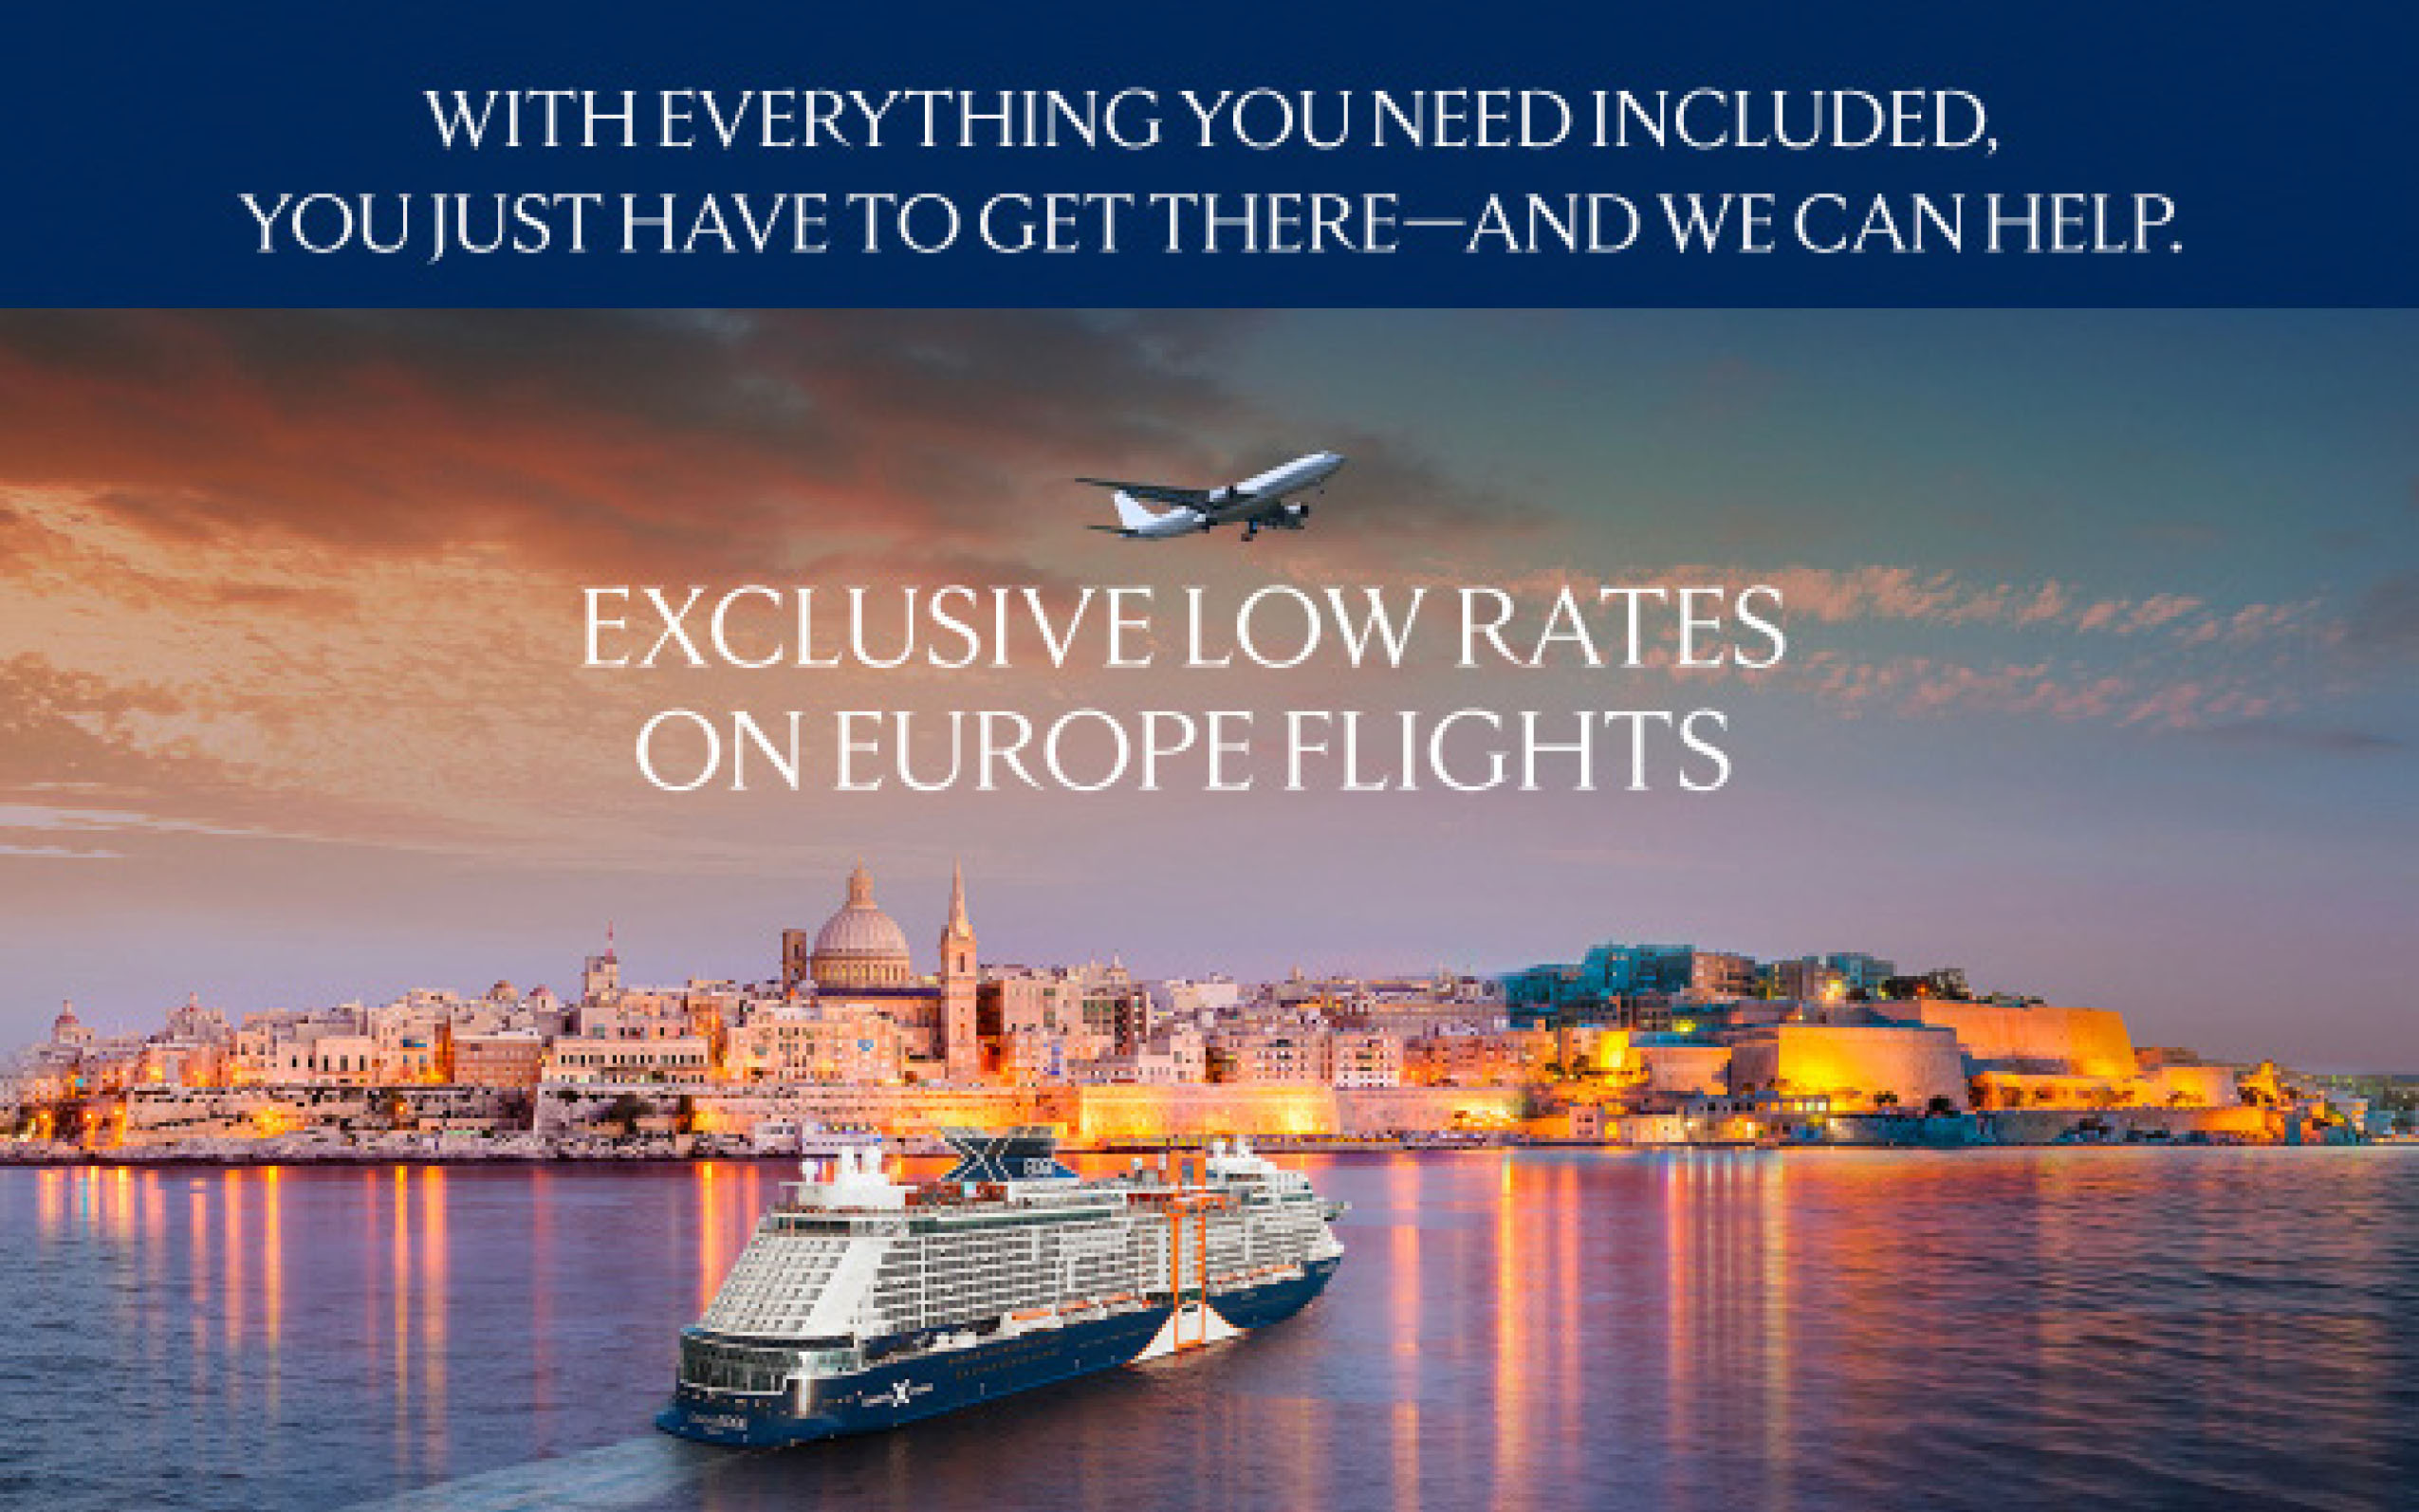 Exclusive Low Rates on Europe Flights with Celebrity Cruises